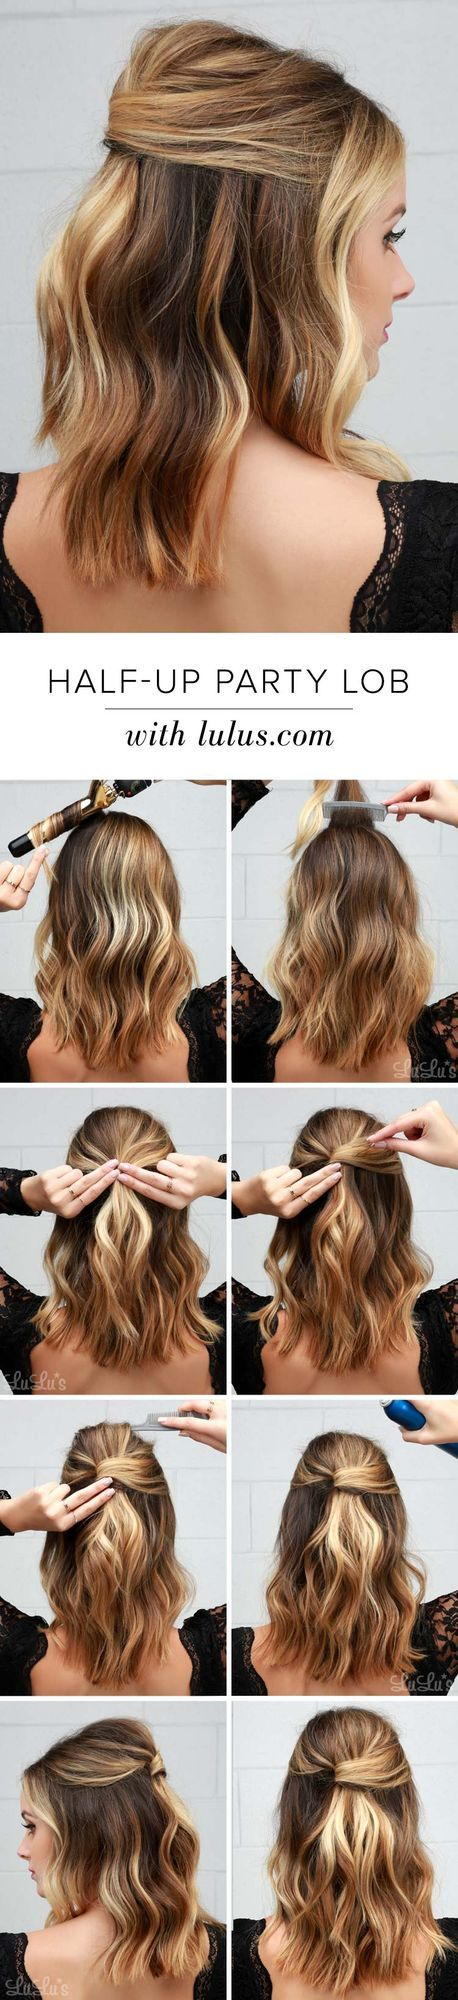 The Lob has taken the hair scene by storm, and we couldn't be more thrilled. If you recently made the chop – and are now in need of some style inspo – have no fear, our Half-Up Party Lob is here! Oh-s